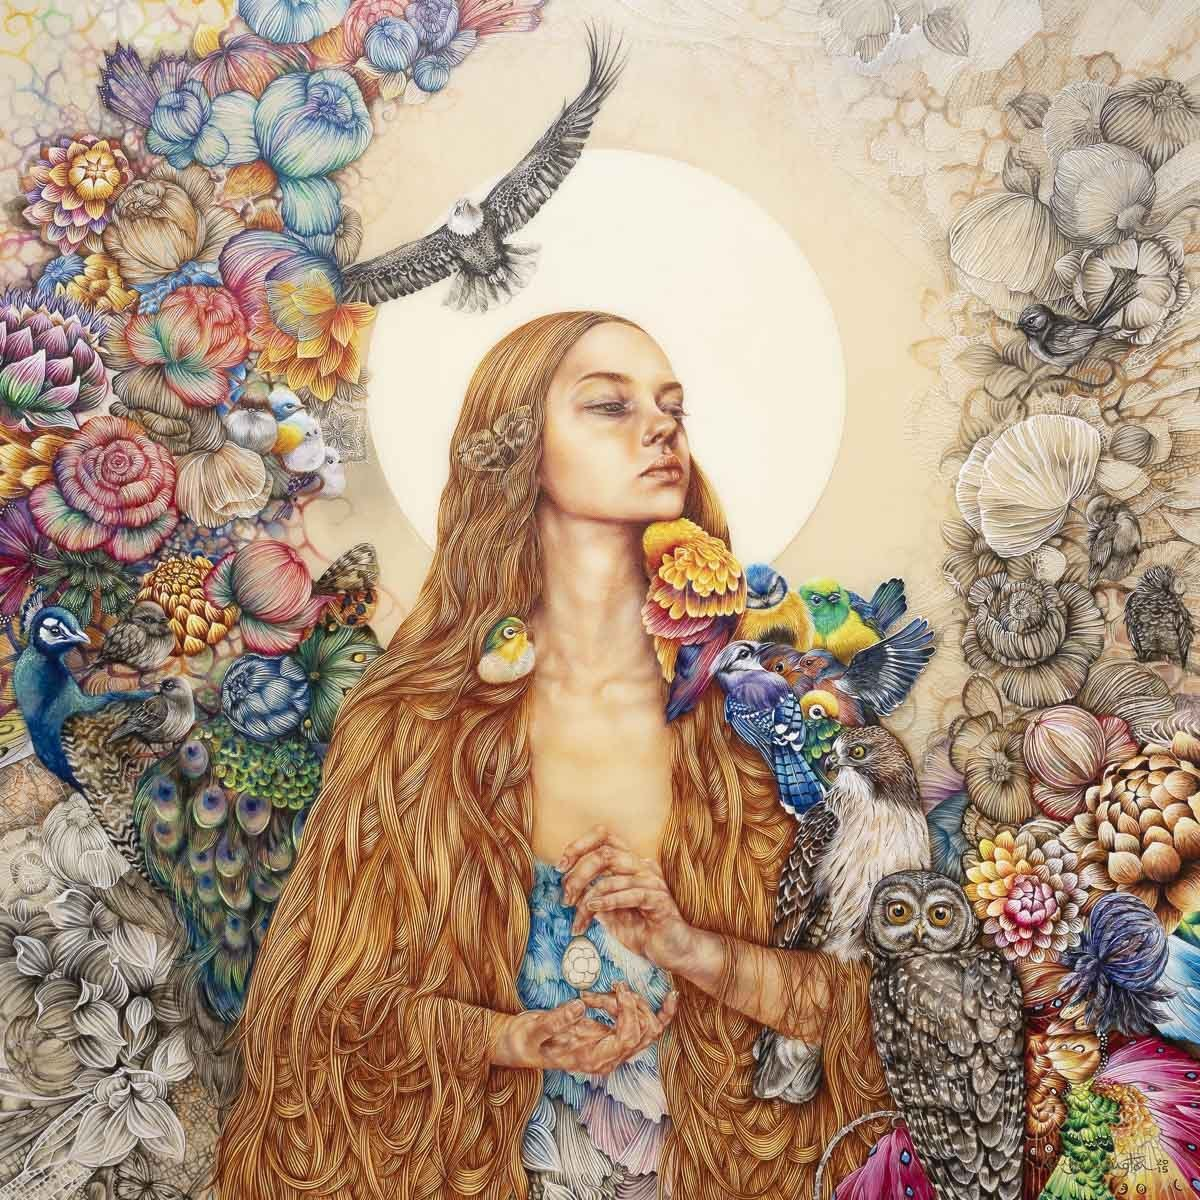 The Daughter of Gaia - Original Kerry Darlington